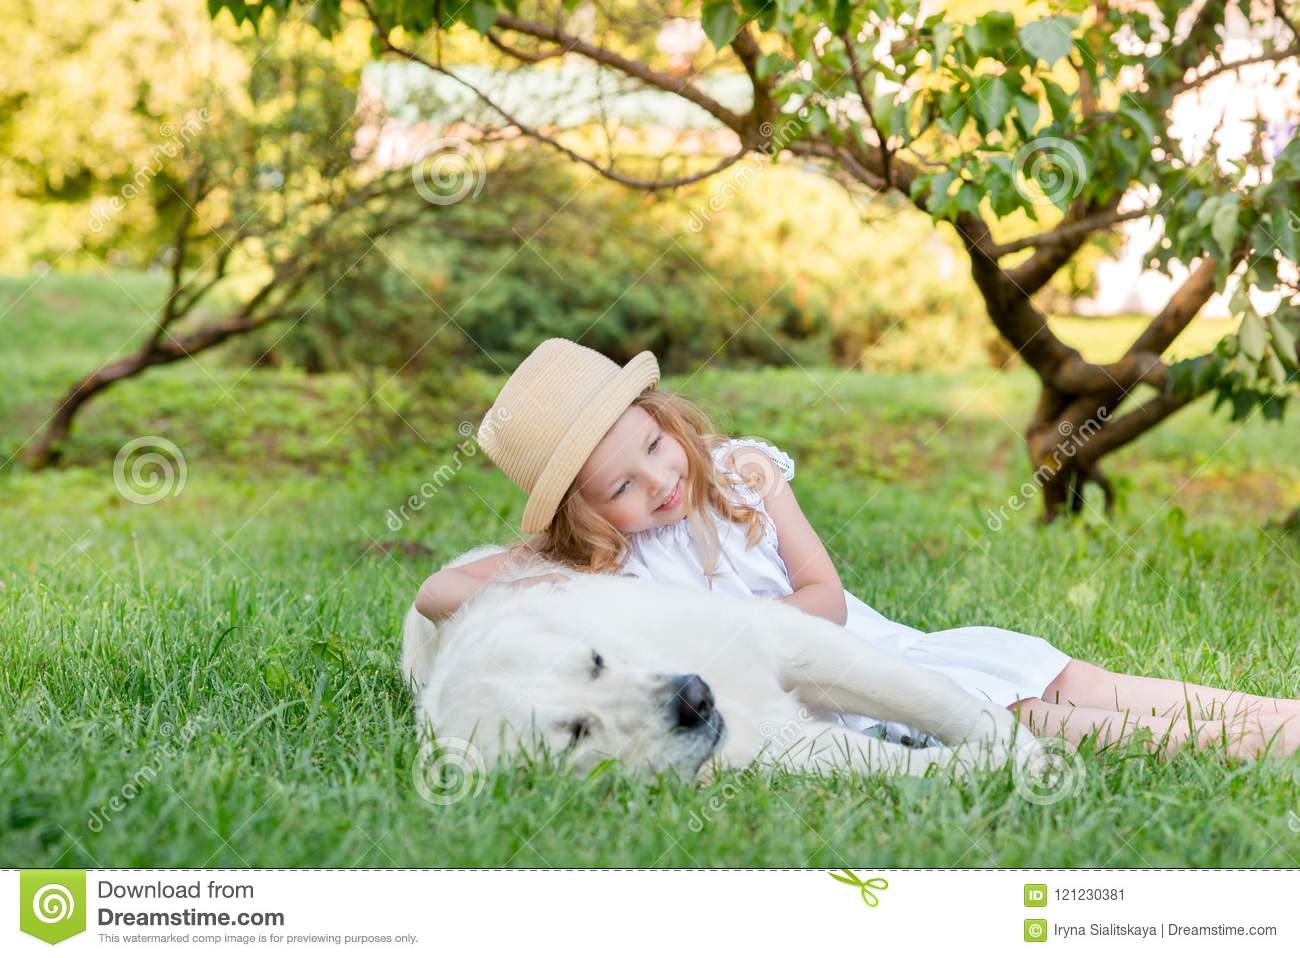 Little Girl With A Big White Dog In The Park A Beautiful 5 Year Old Girl In White Dress Hugs Her Favorite Dog During A Summer Walk